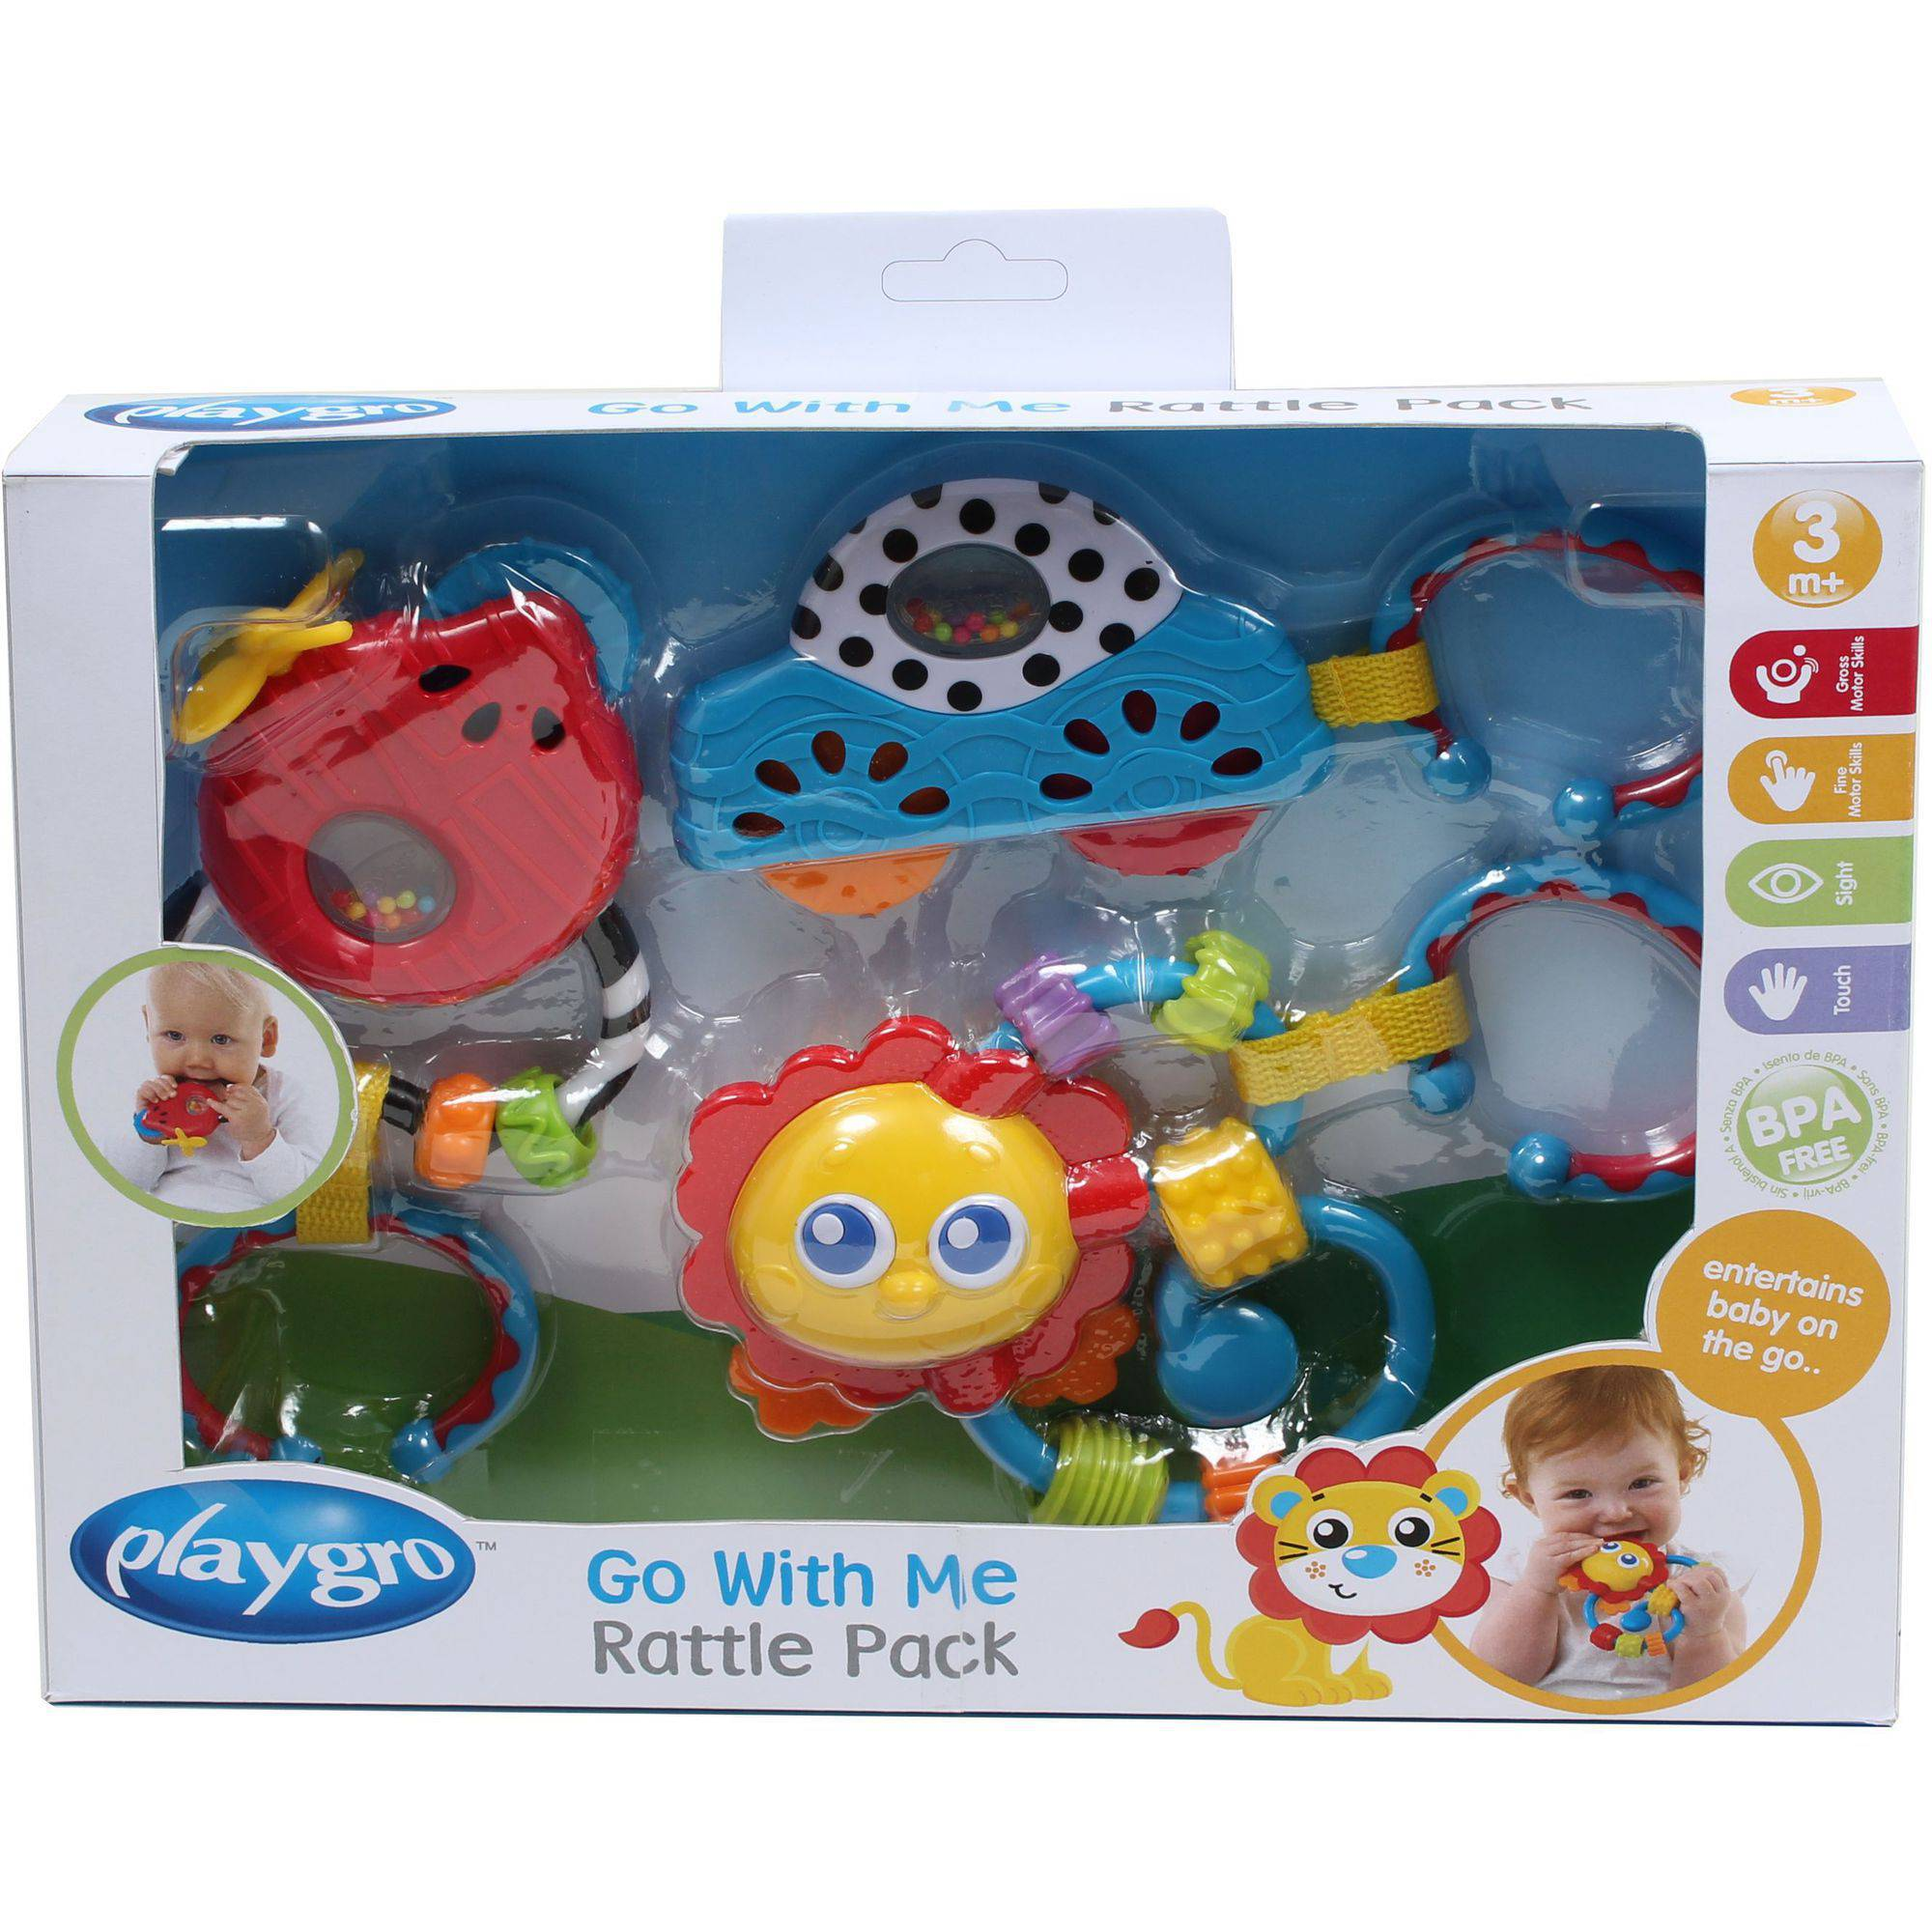 Playgro Go With Me Rattle Pack Boy, 3 Pieces